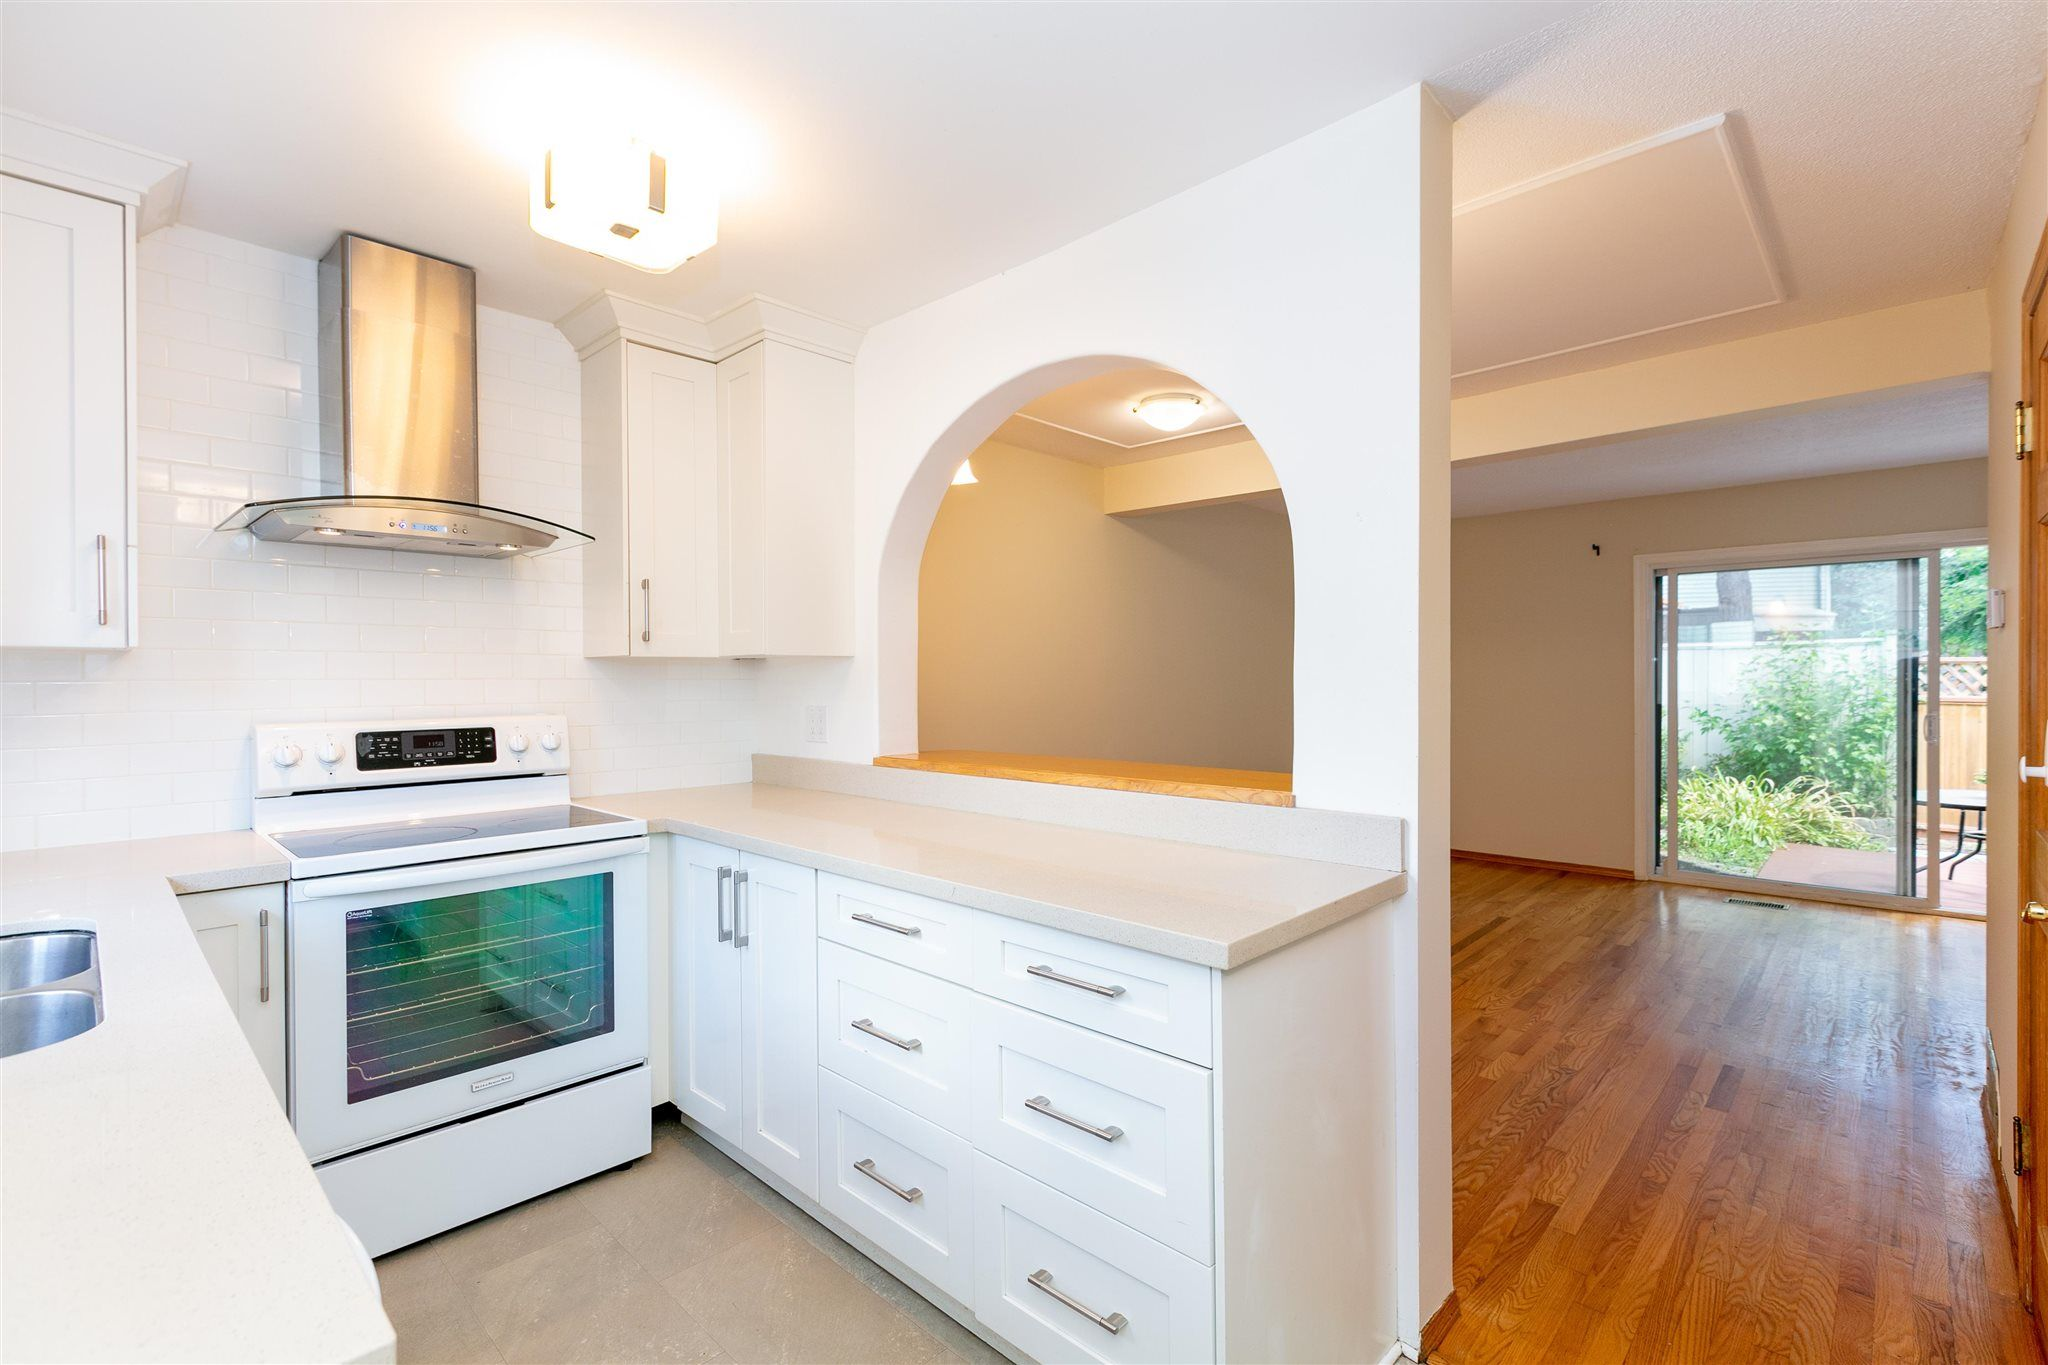 Main Photo: 3254 GANYMEDE Drive in Burnaby: Simon Fraser Hills Townhouse for sale (Burnaby North)  : MLS®# R2604468